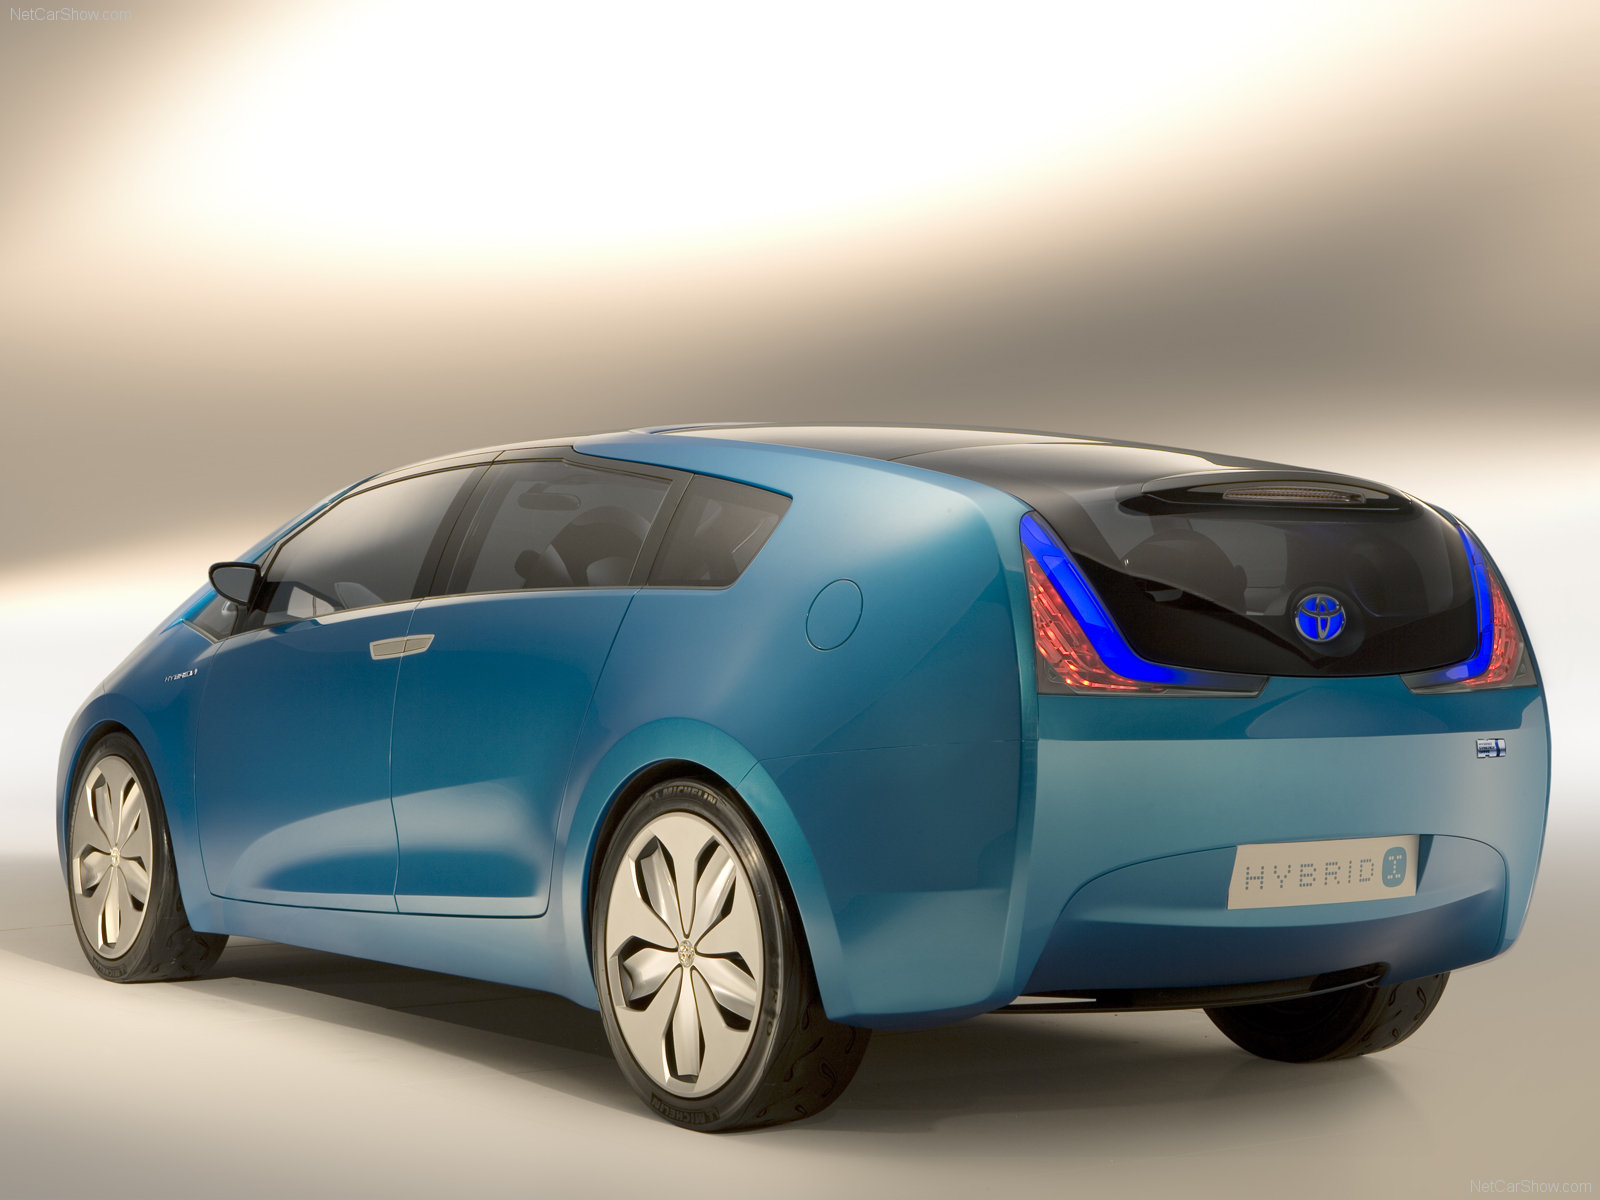 Toyota Images Hybrid X Concept 2007 Hd Wallpaper And